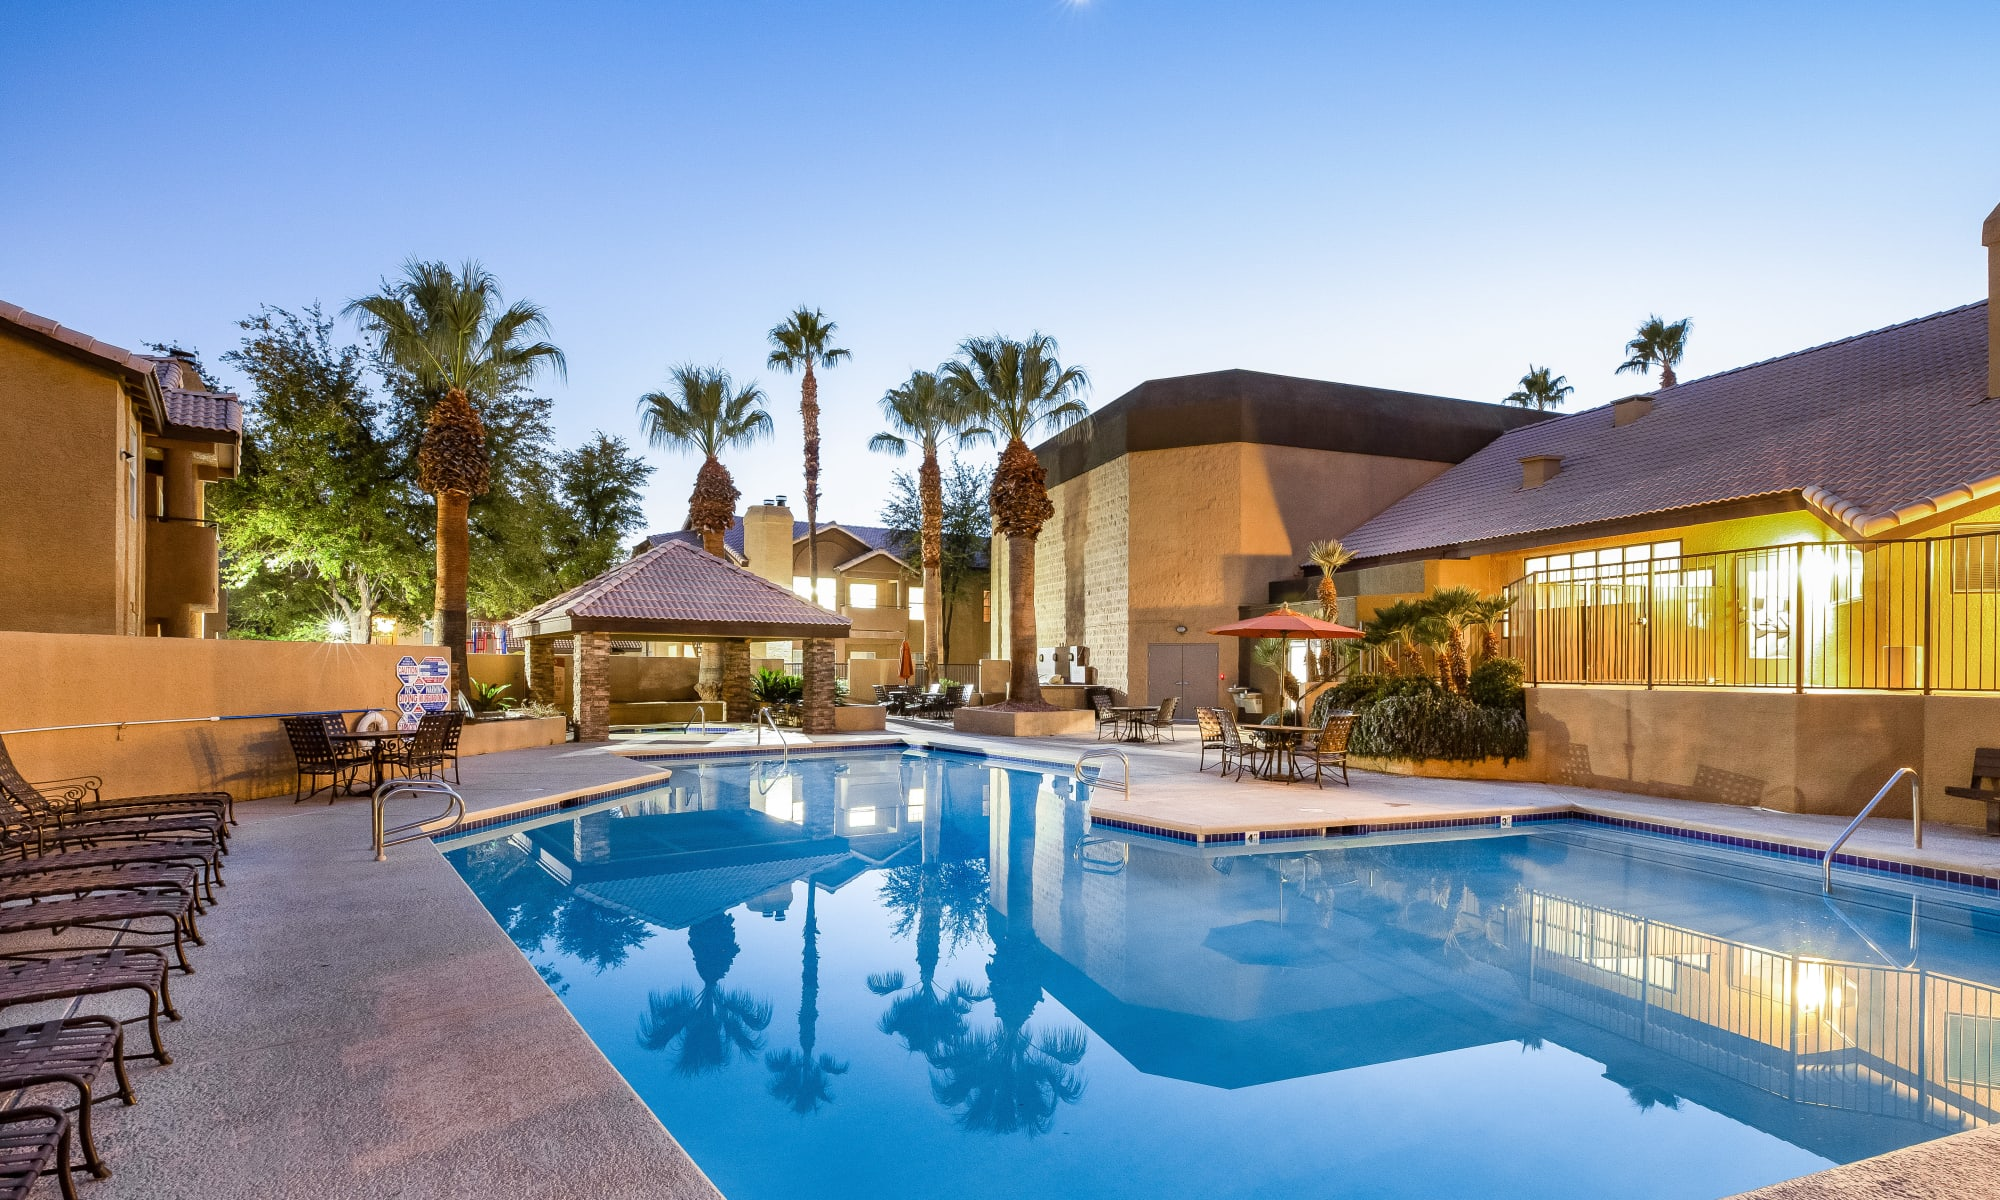 Swimming pool to relax in at Village at Desert Lakes in Las Vegas, NV